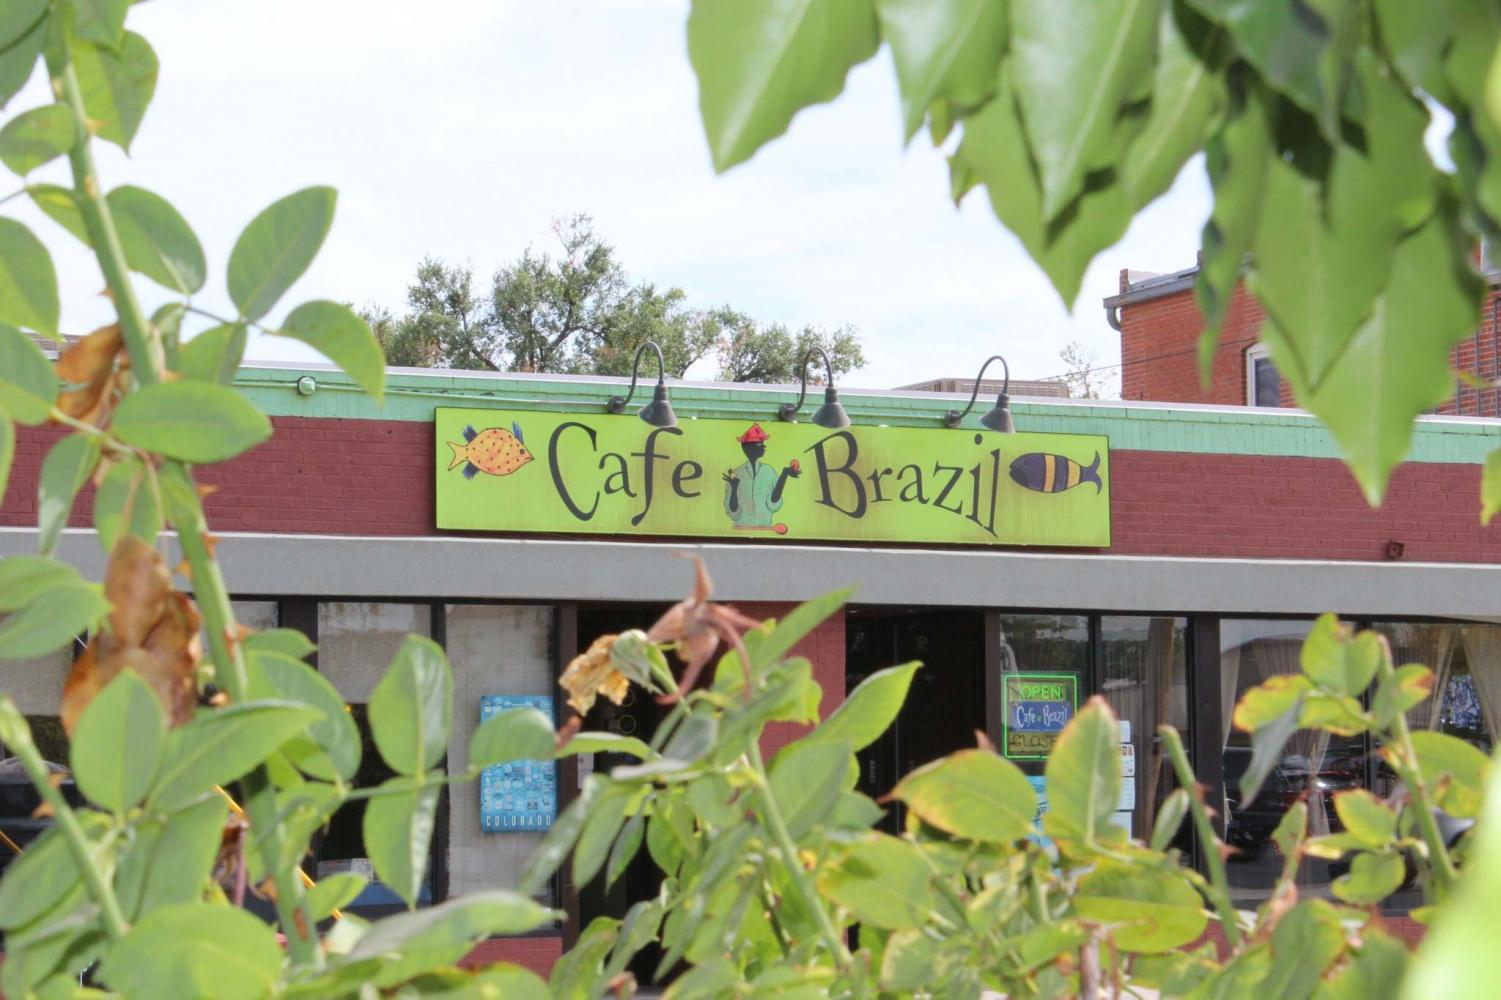 Cafe Brazil, Sept. 19, 2018 (AP photo/ Jason Truitt)